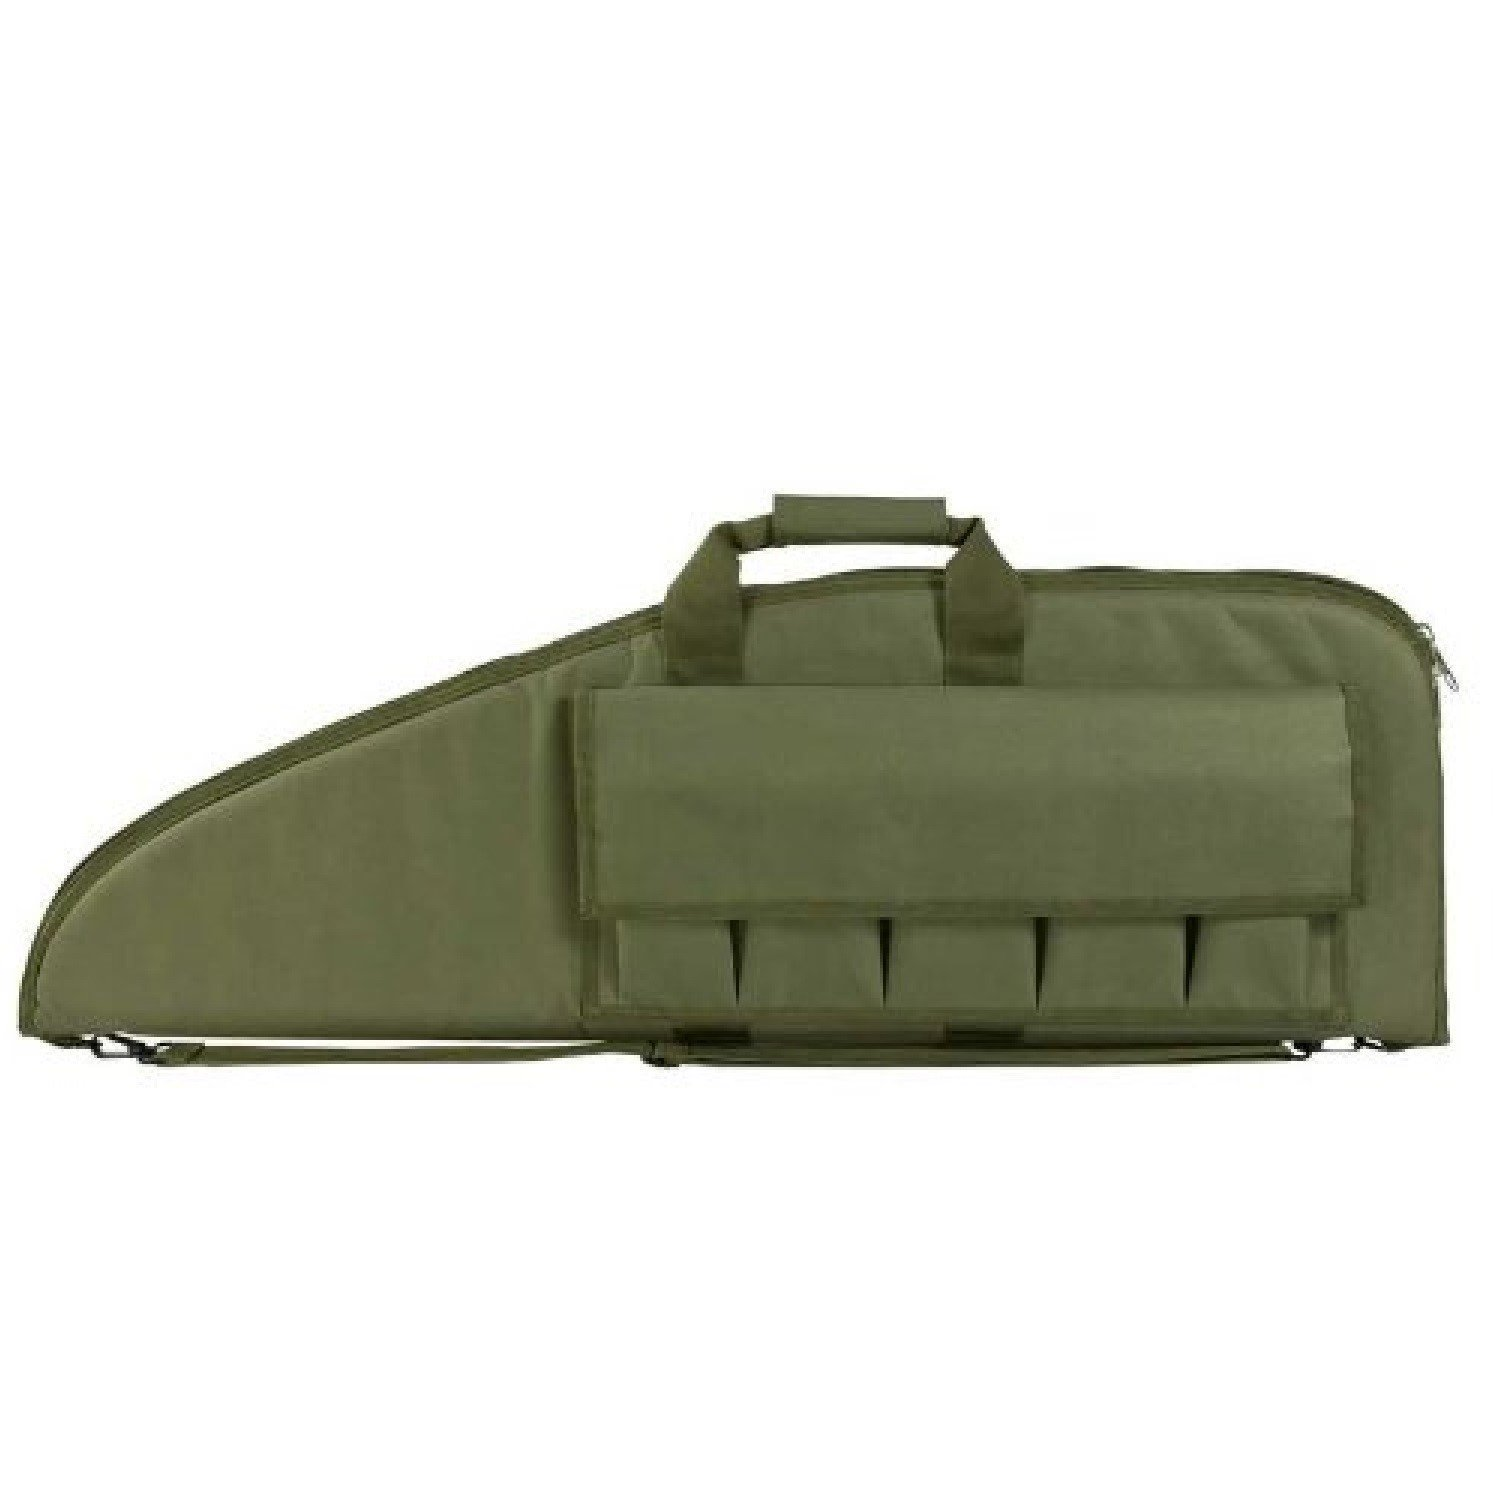 VISM by NcStar Gun Case, Green, 42''L x 13''H by NcSTAR